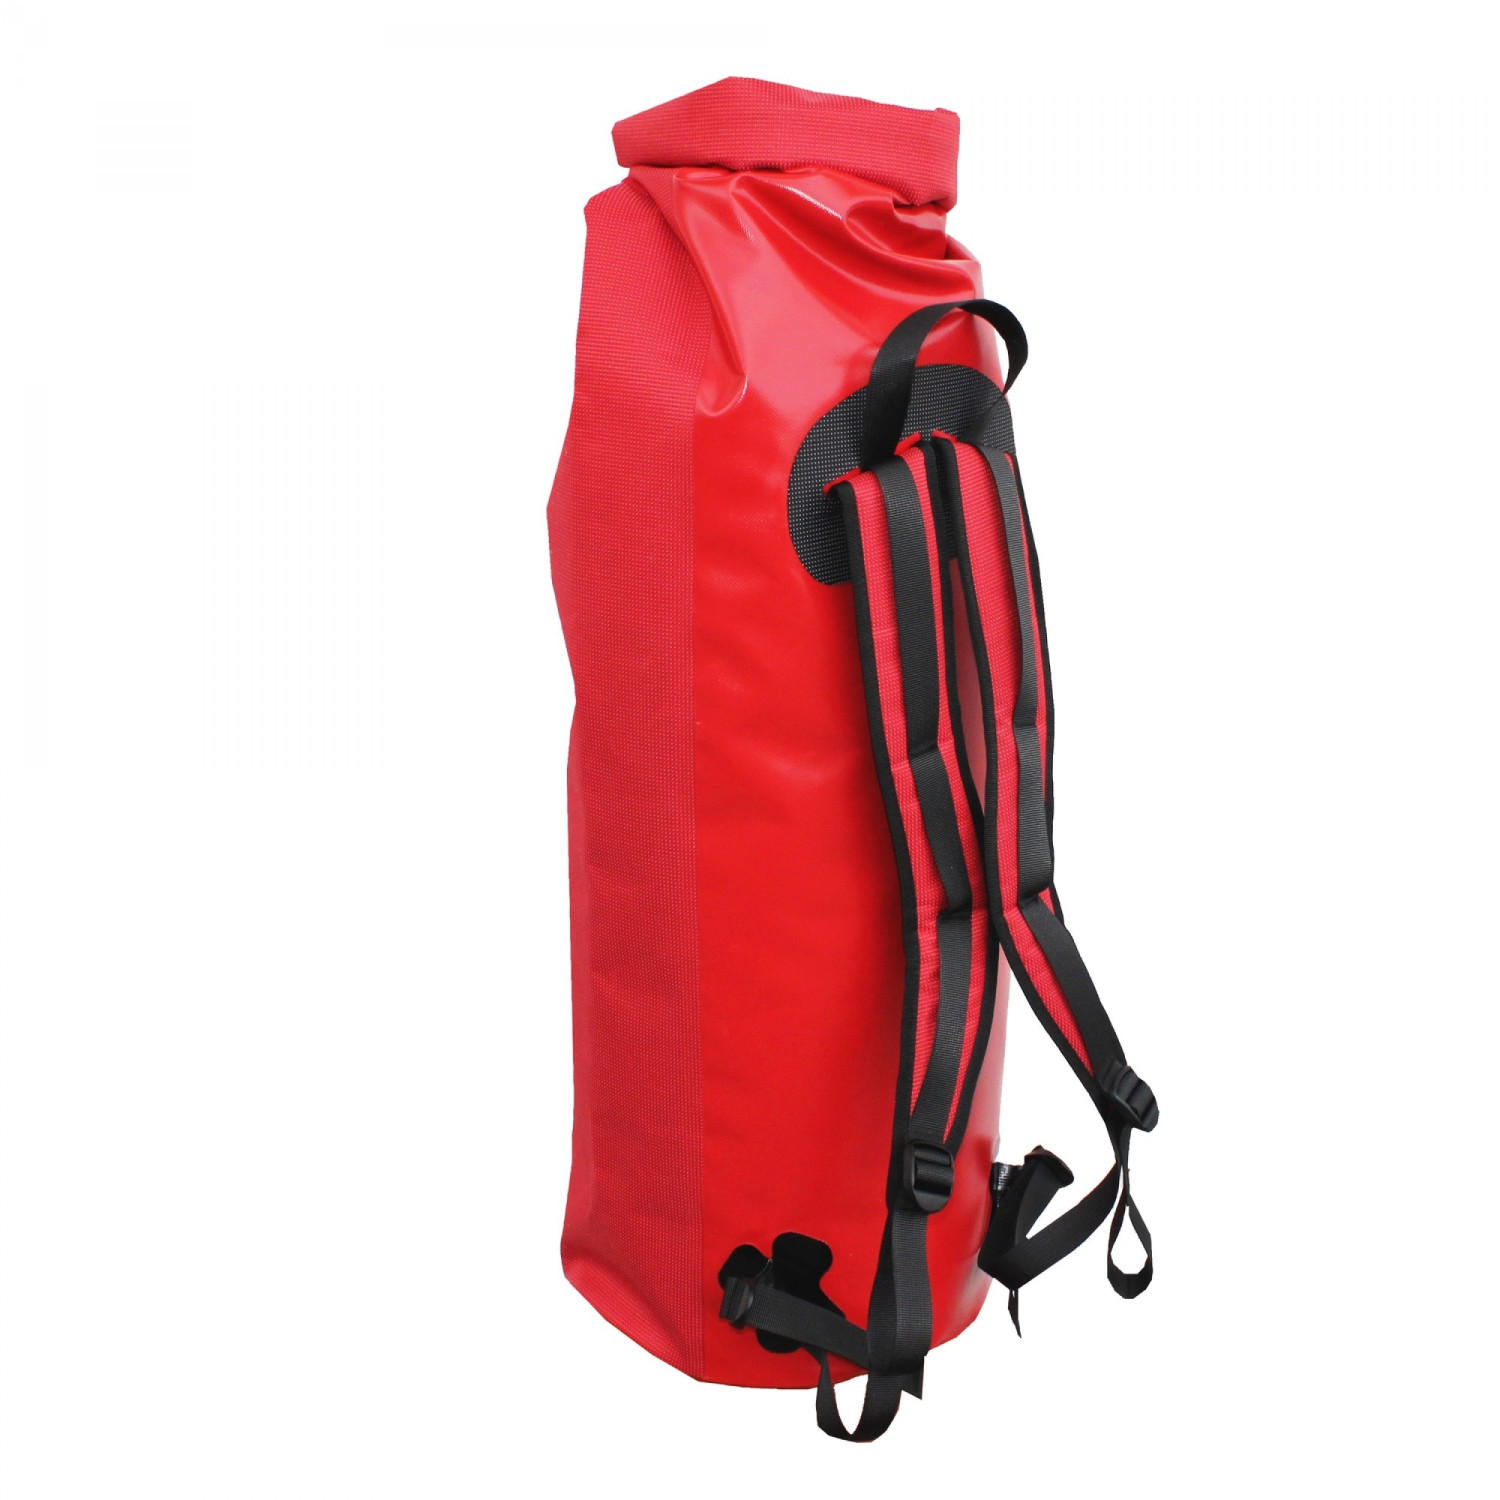 Relags Seesack 40L rot